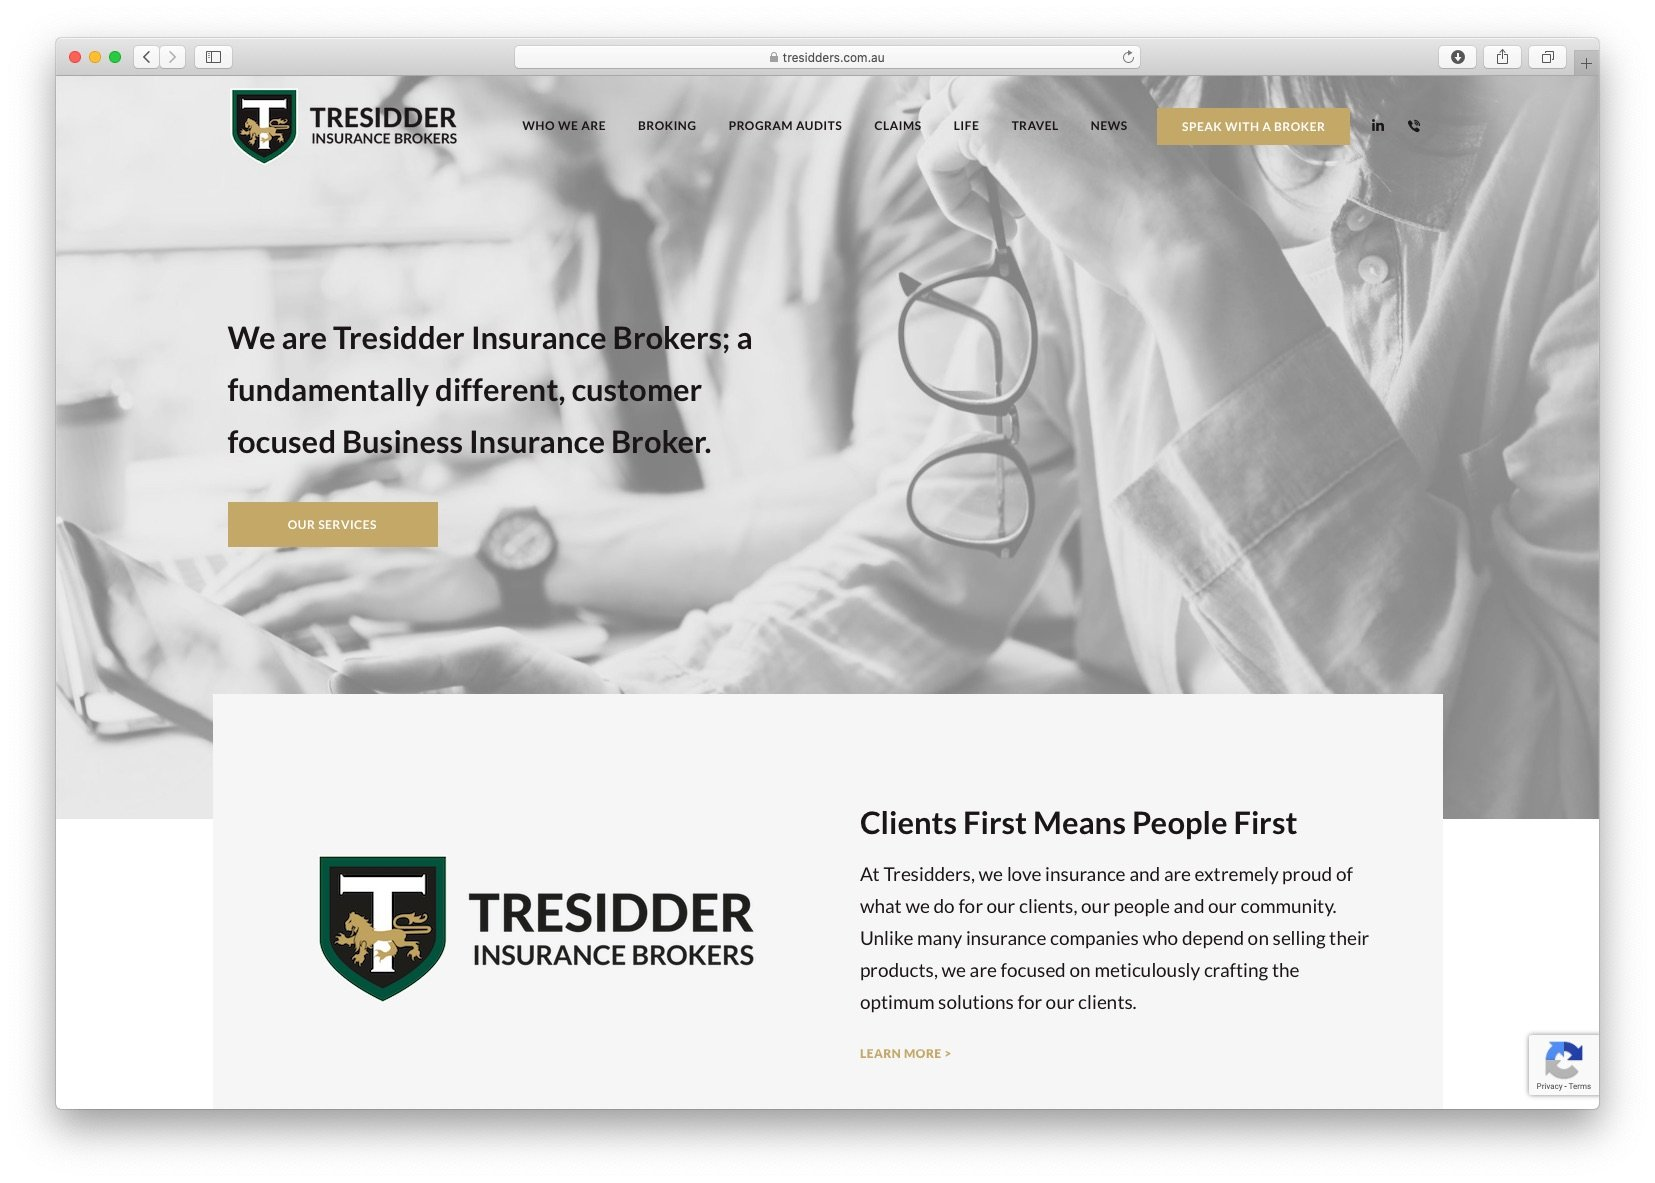 Tresidder Insurance Brokers